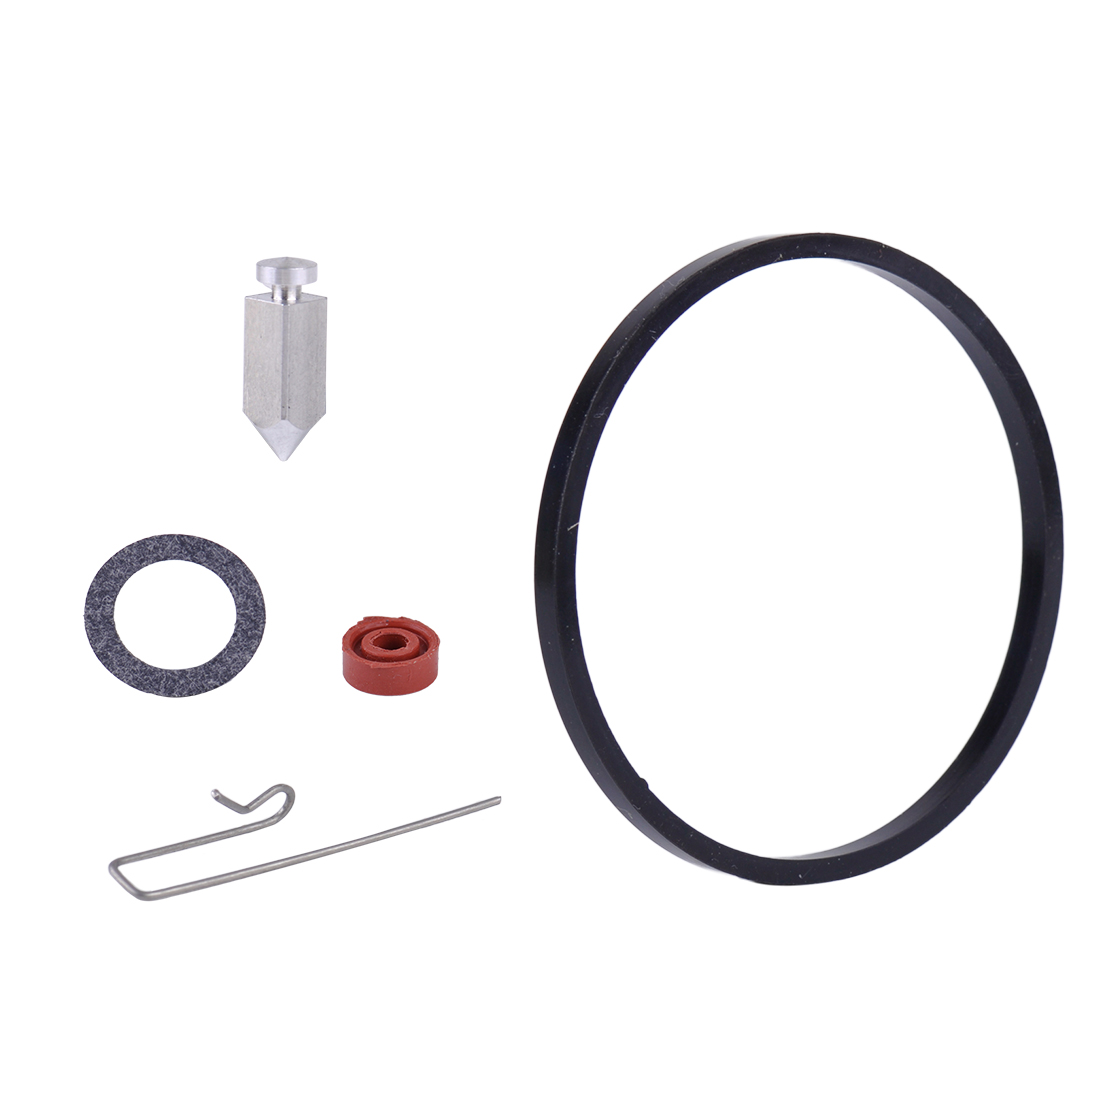 LETAOSK Inlet Needle Gasket Carburetor Carb Repair Kit Replacement Fit For Tecumseh Float Carburetor V40 V50 V60 631021 525-212